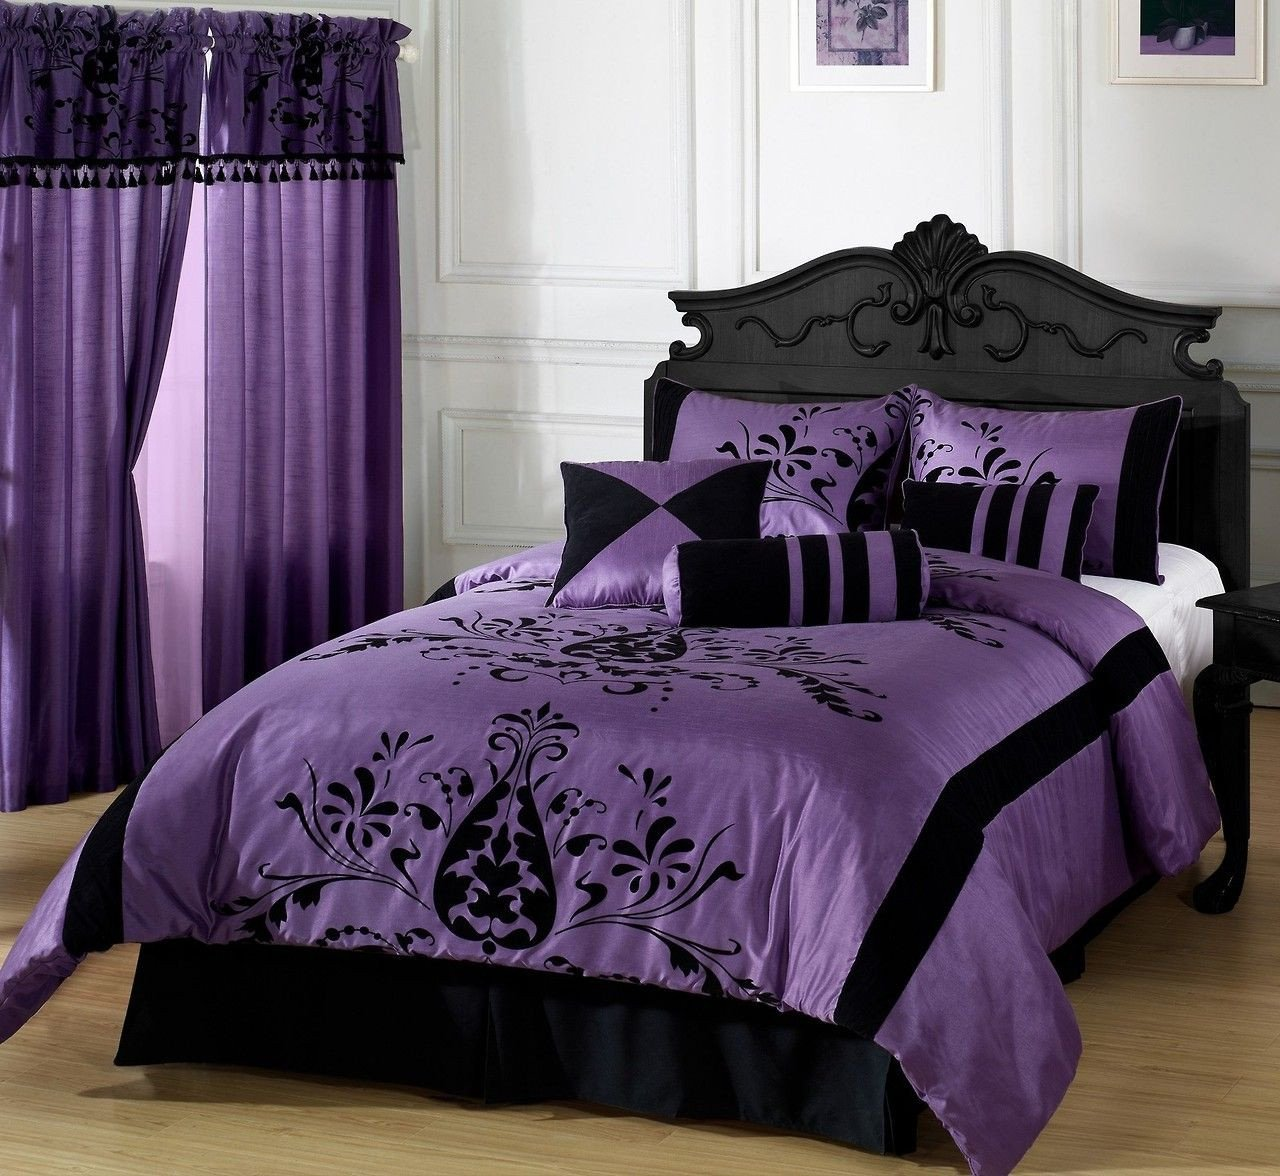 Lavender and Gray Bedroom Beautiful Goth Gothic Gothic Decor Purple and Black E Headboard